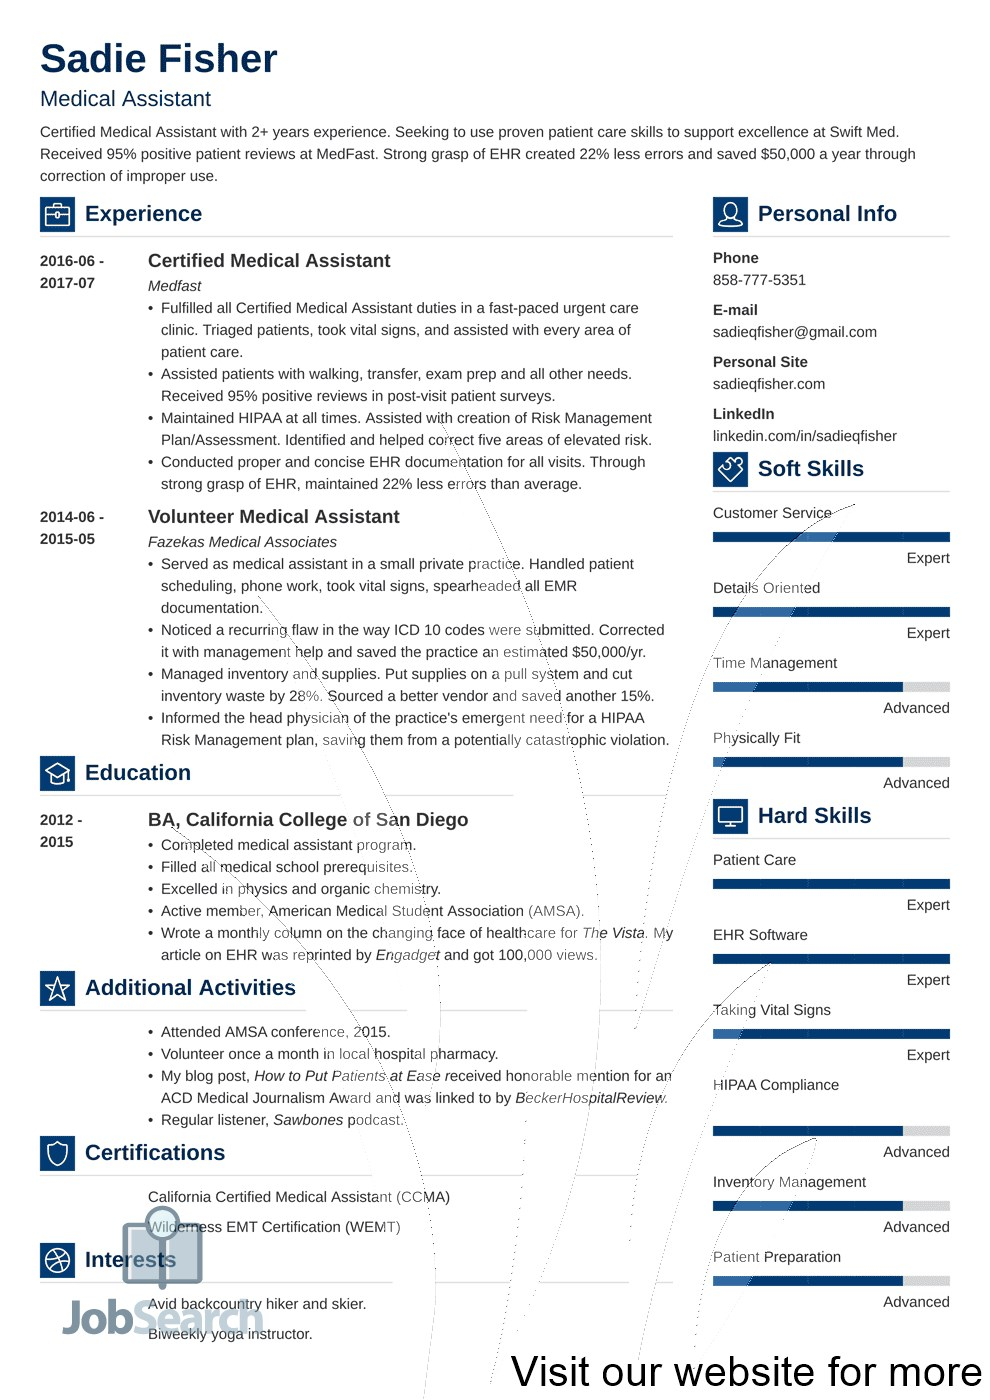 Healthcare Resume Templates 2020 Healthcare Resume Templates Healthcare Resume Templates Free Healthcare In 2020 Resume Design Template Resume Templates Resume Design